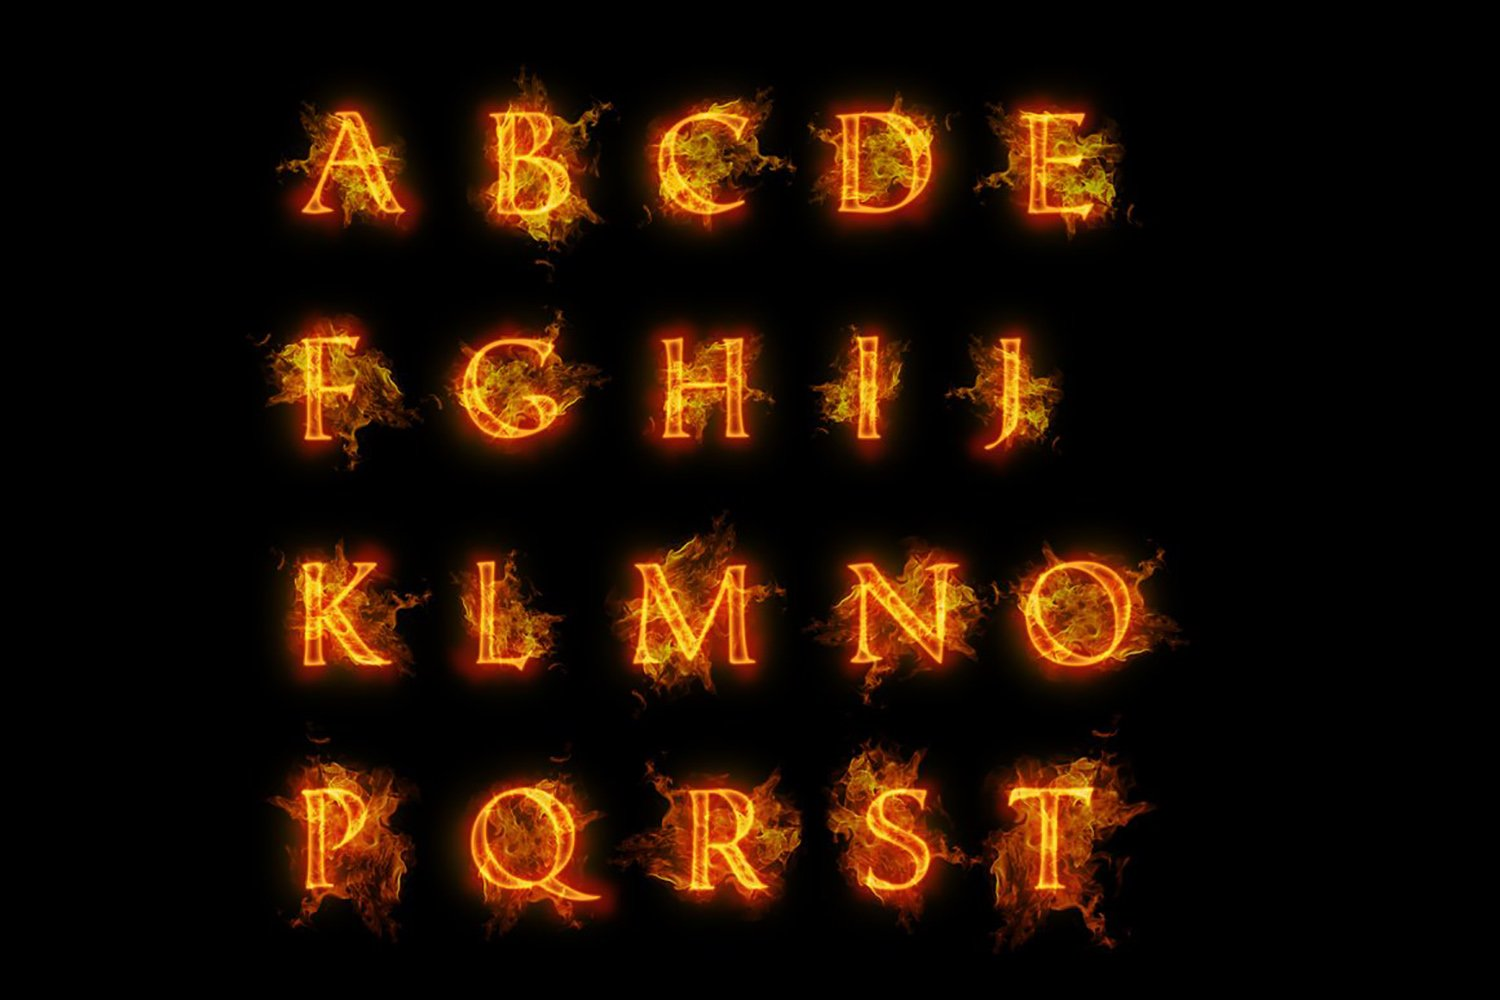 Fire font. Burning letters alphabet example image 5